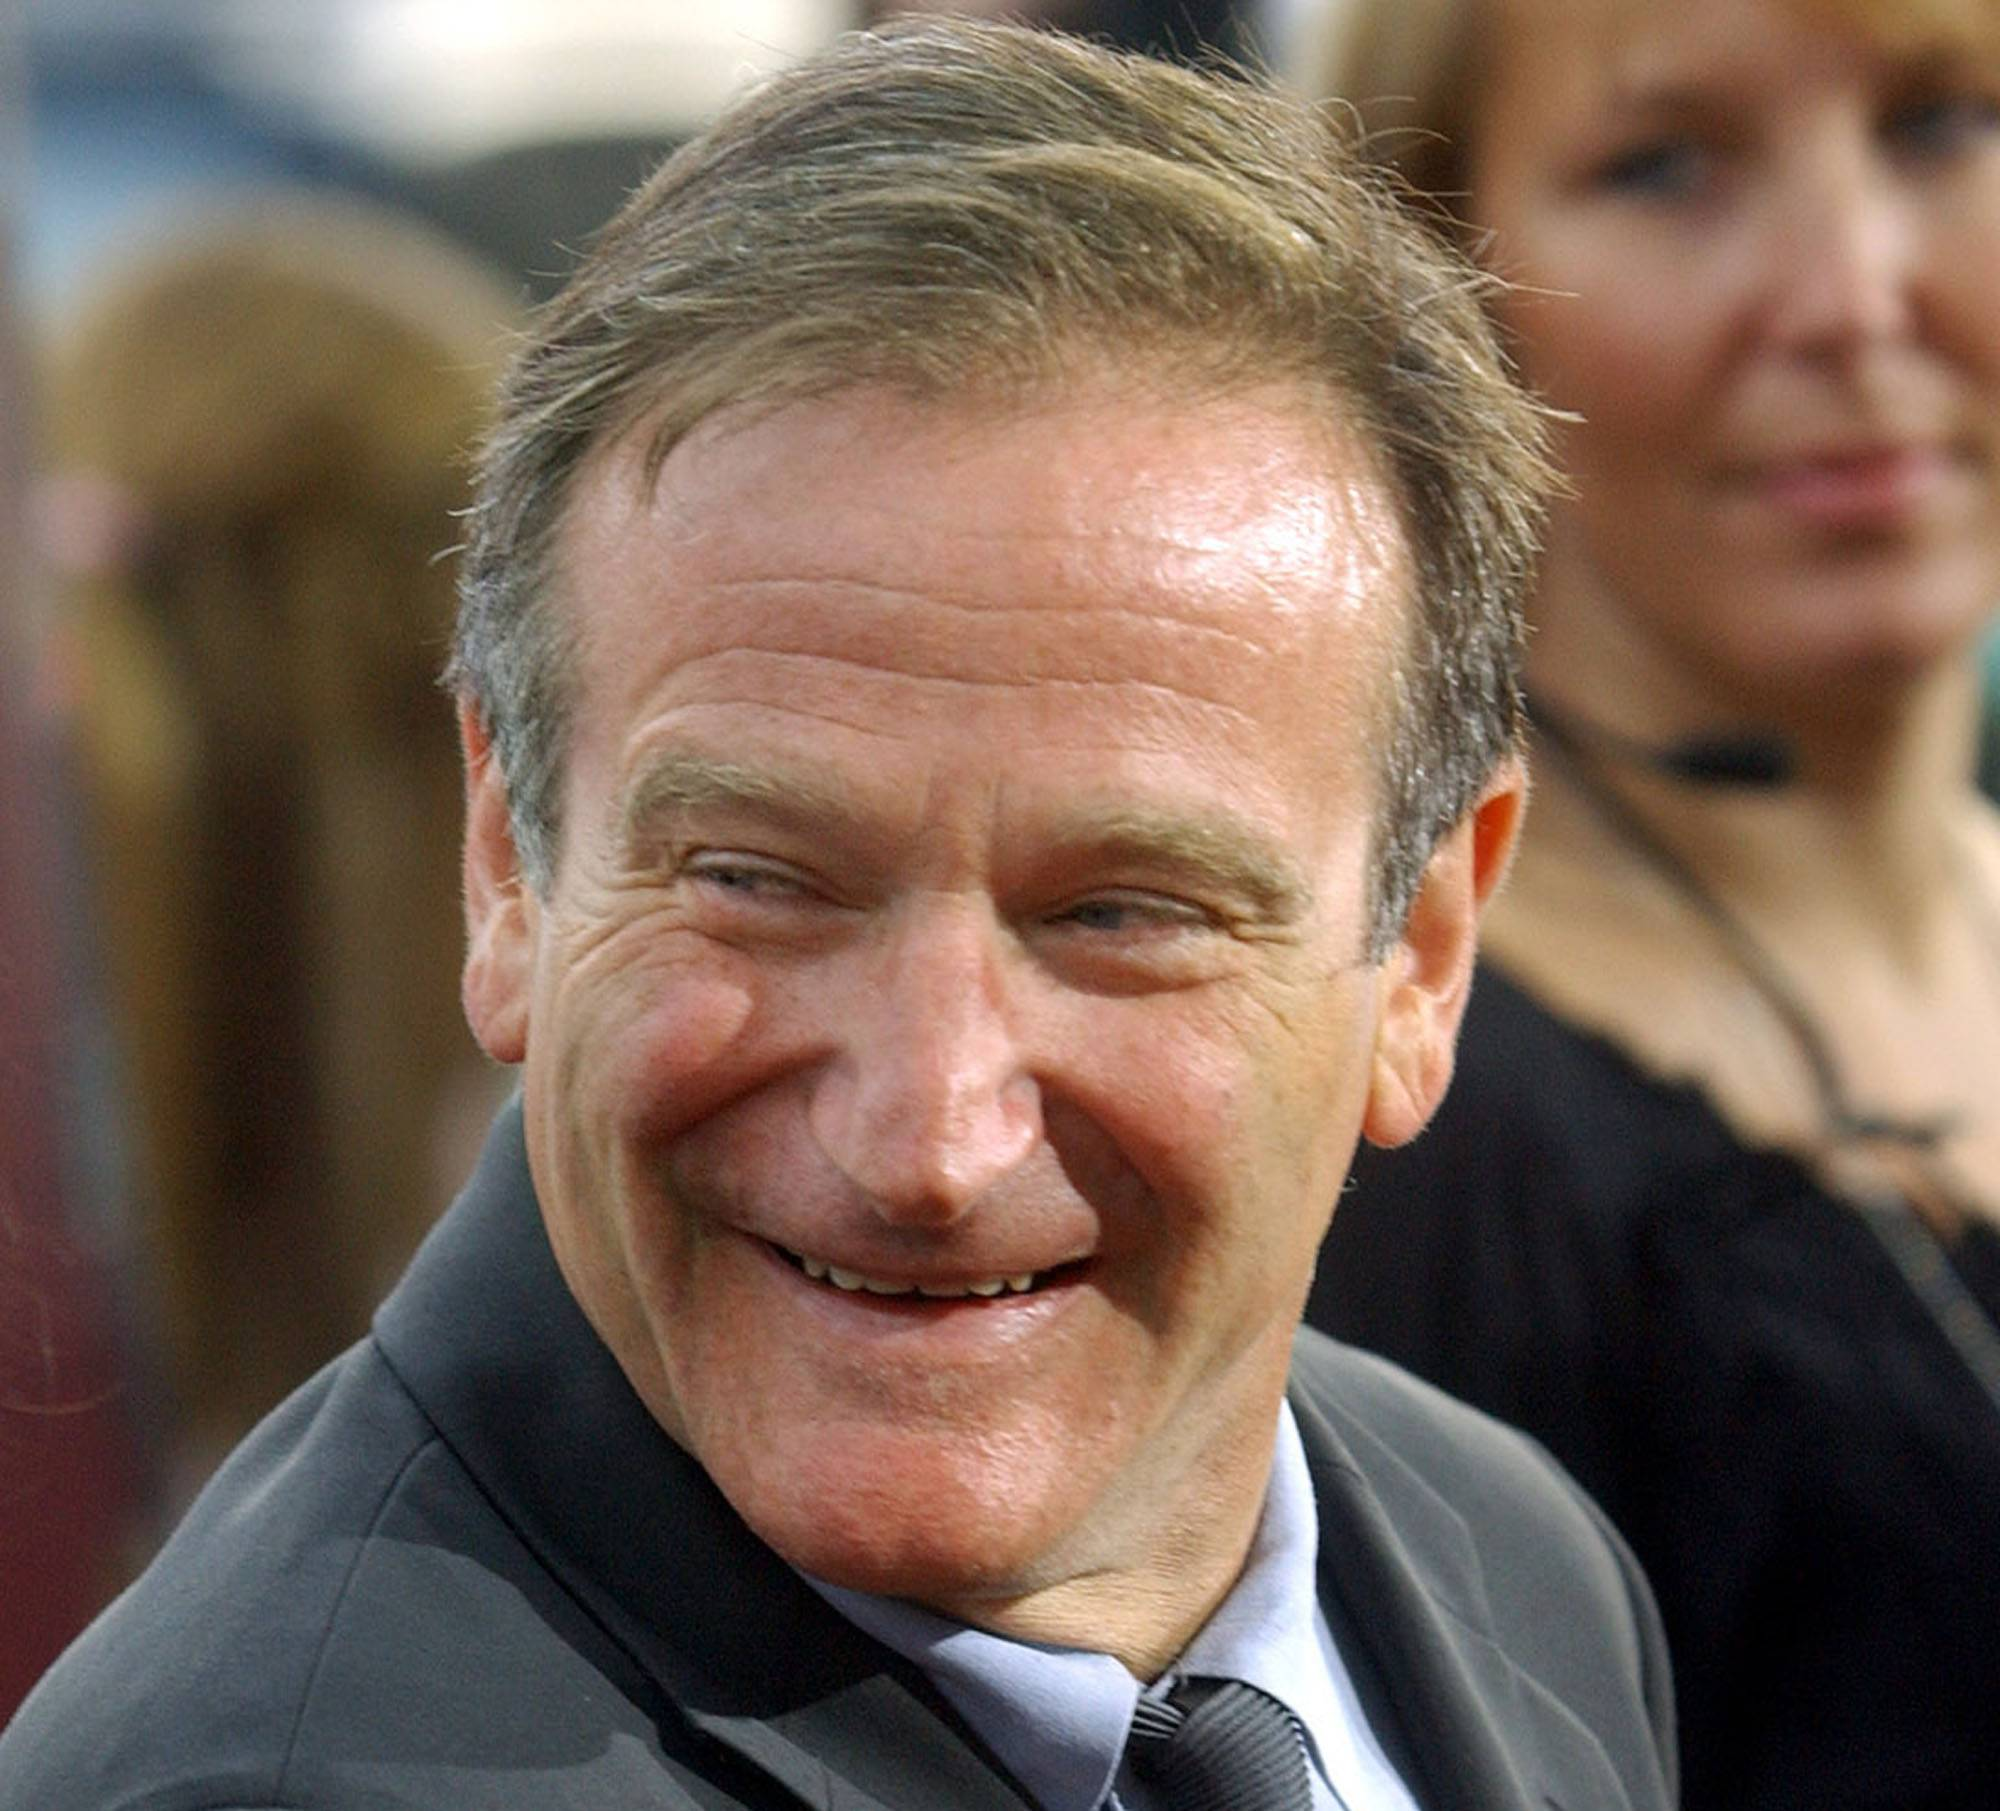 Robin Williams, the Academy Award winner and comic supernova whose explosions of pop culture riffs and impressions dazzled audiences for decades and made him a gleamy-eyed laureate for the Information Age, died Monday in an apparent suicide.